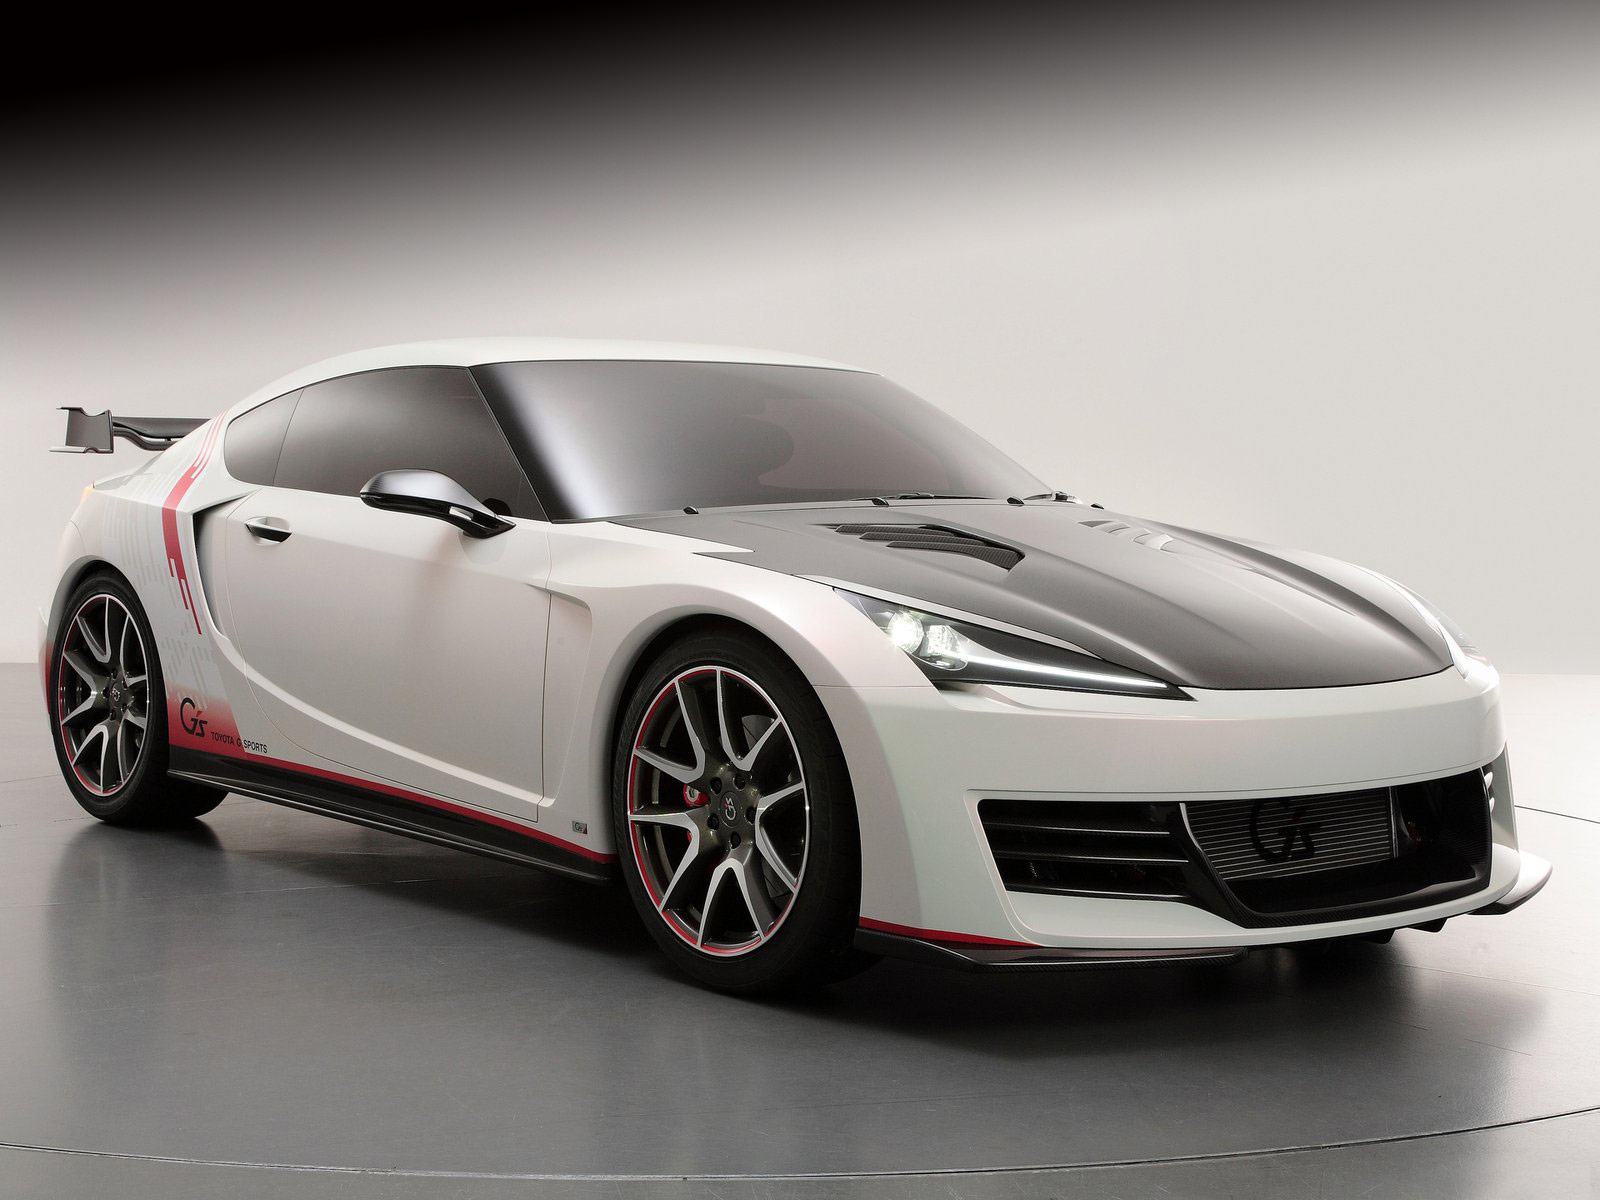 2010 toyota ft 86g sports concept japanese car photos. Black Bedroom Furniture Sets. Home Design Ideas